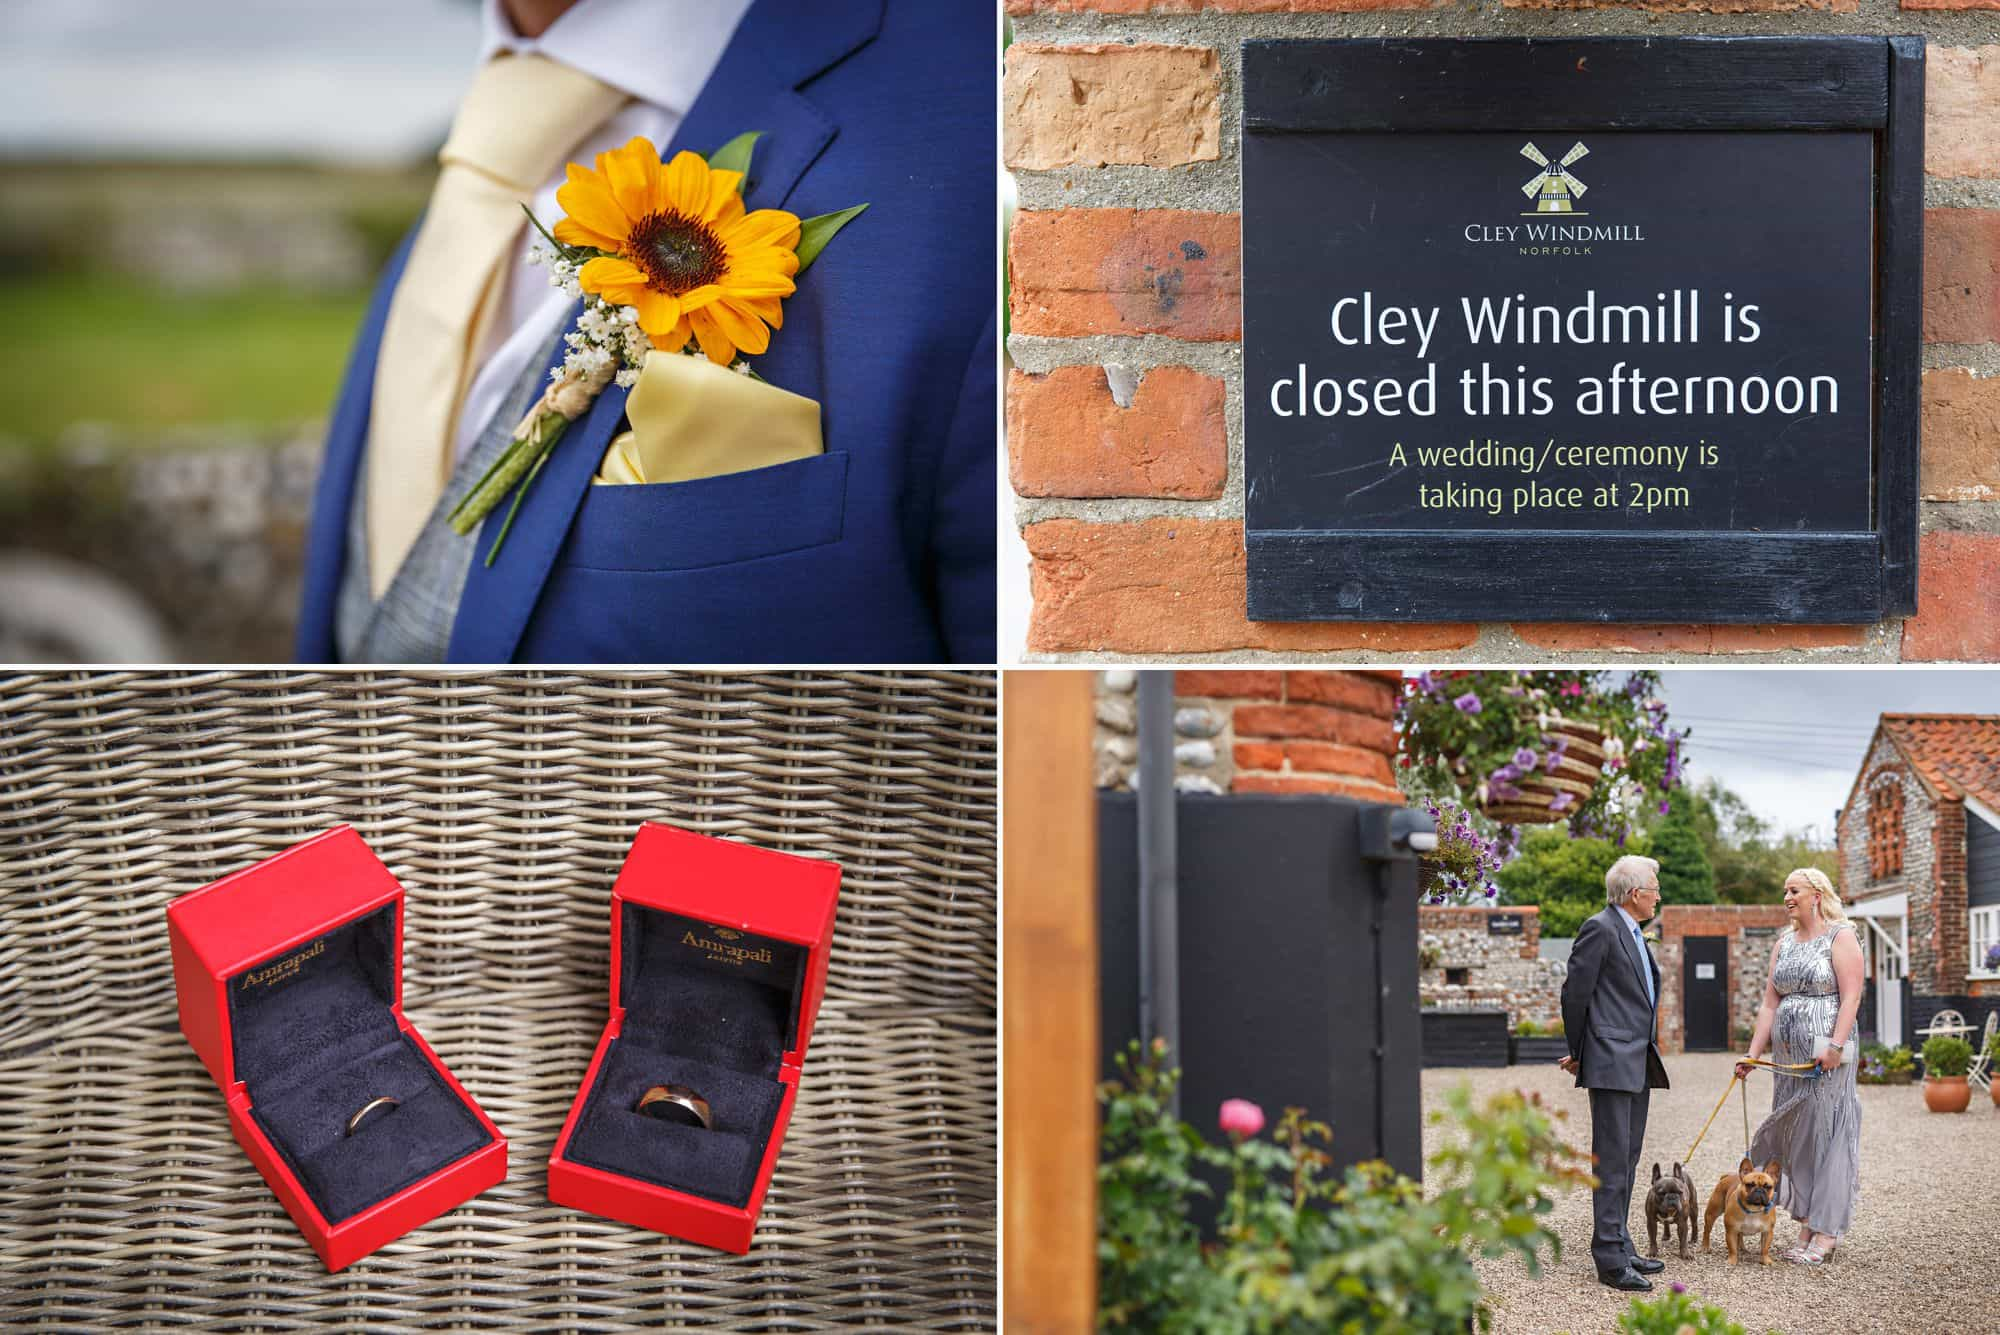 Enjoy Shooting The Short Weddings At Cley Windmill So Many Amazing Views And Shot Opportunities Including A Chance To Get Some Nice Aerial Shots Using